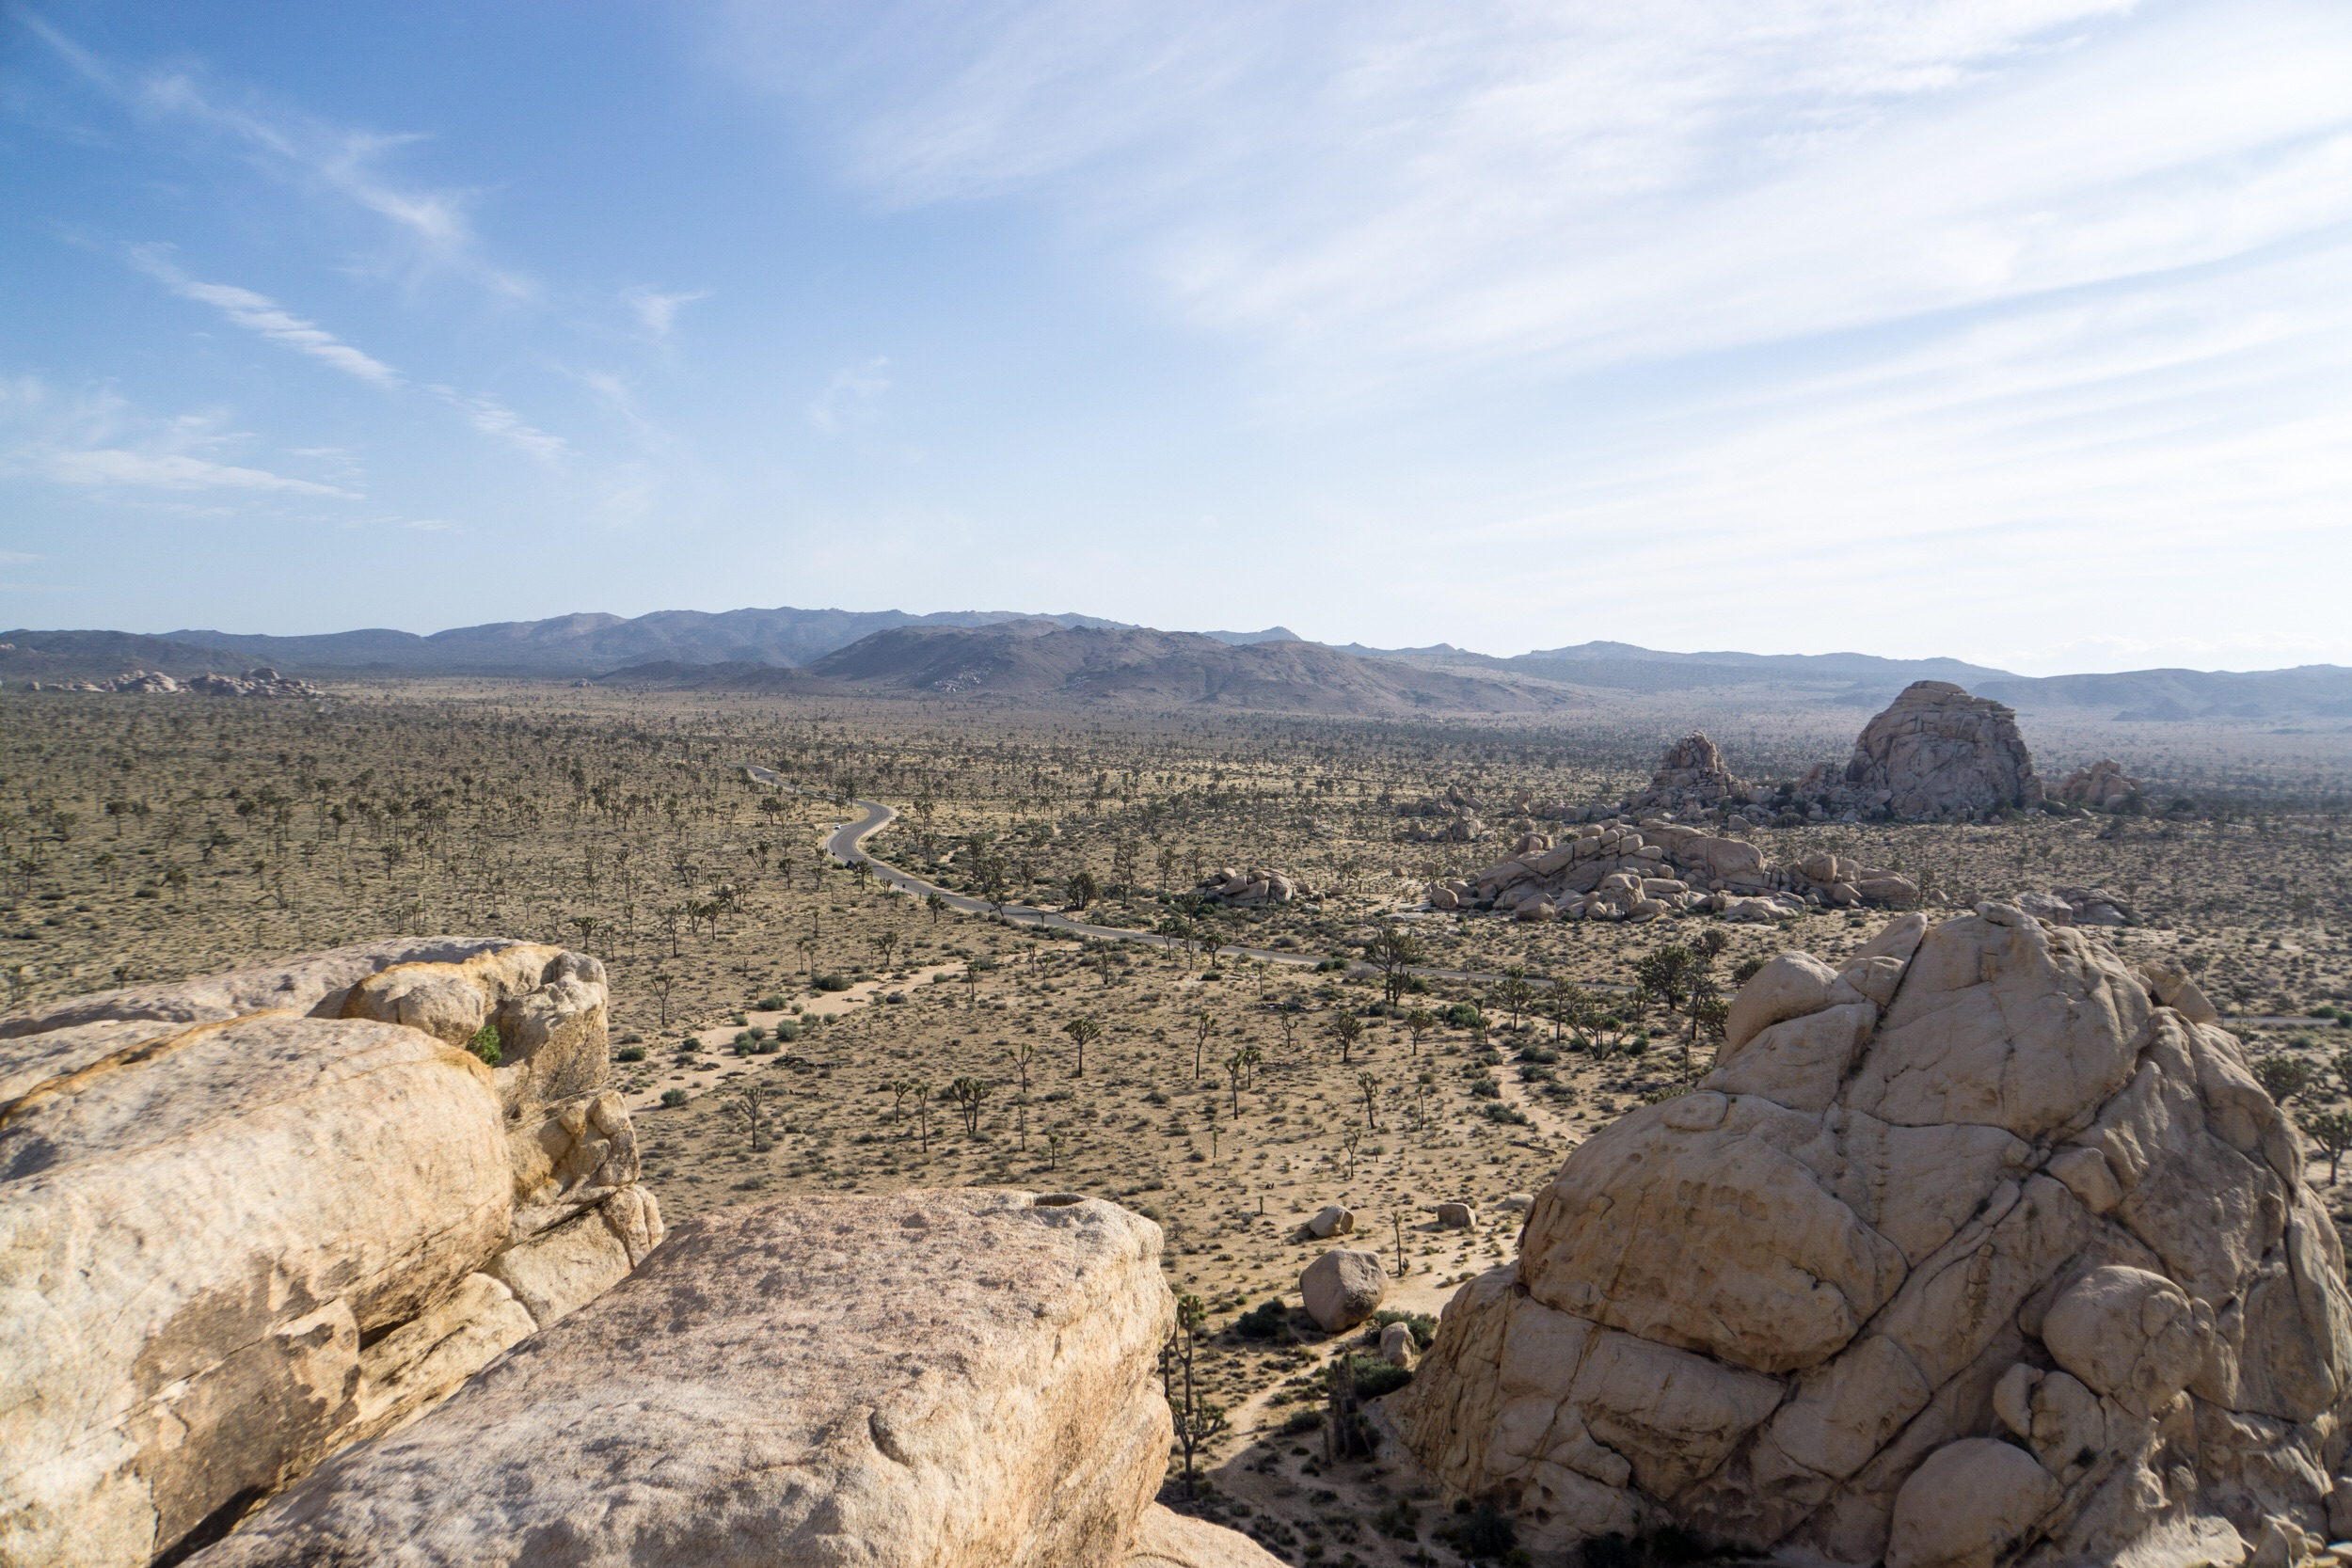 Scrambled to the top of Cyclopes Rock pile to get a better view of the land.